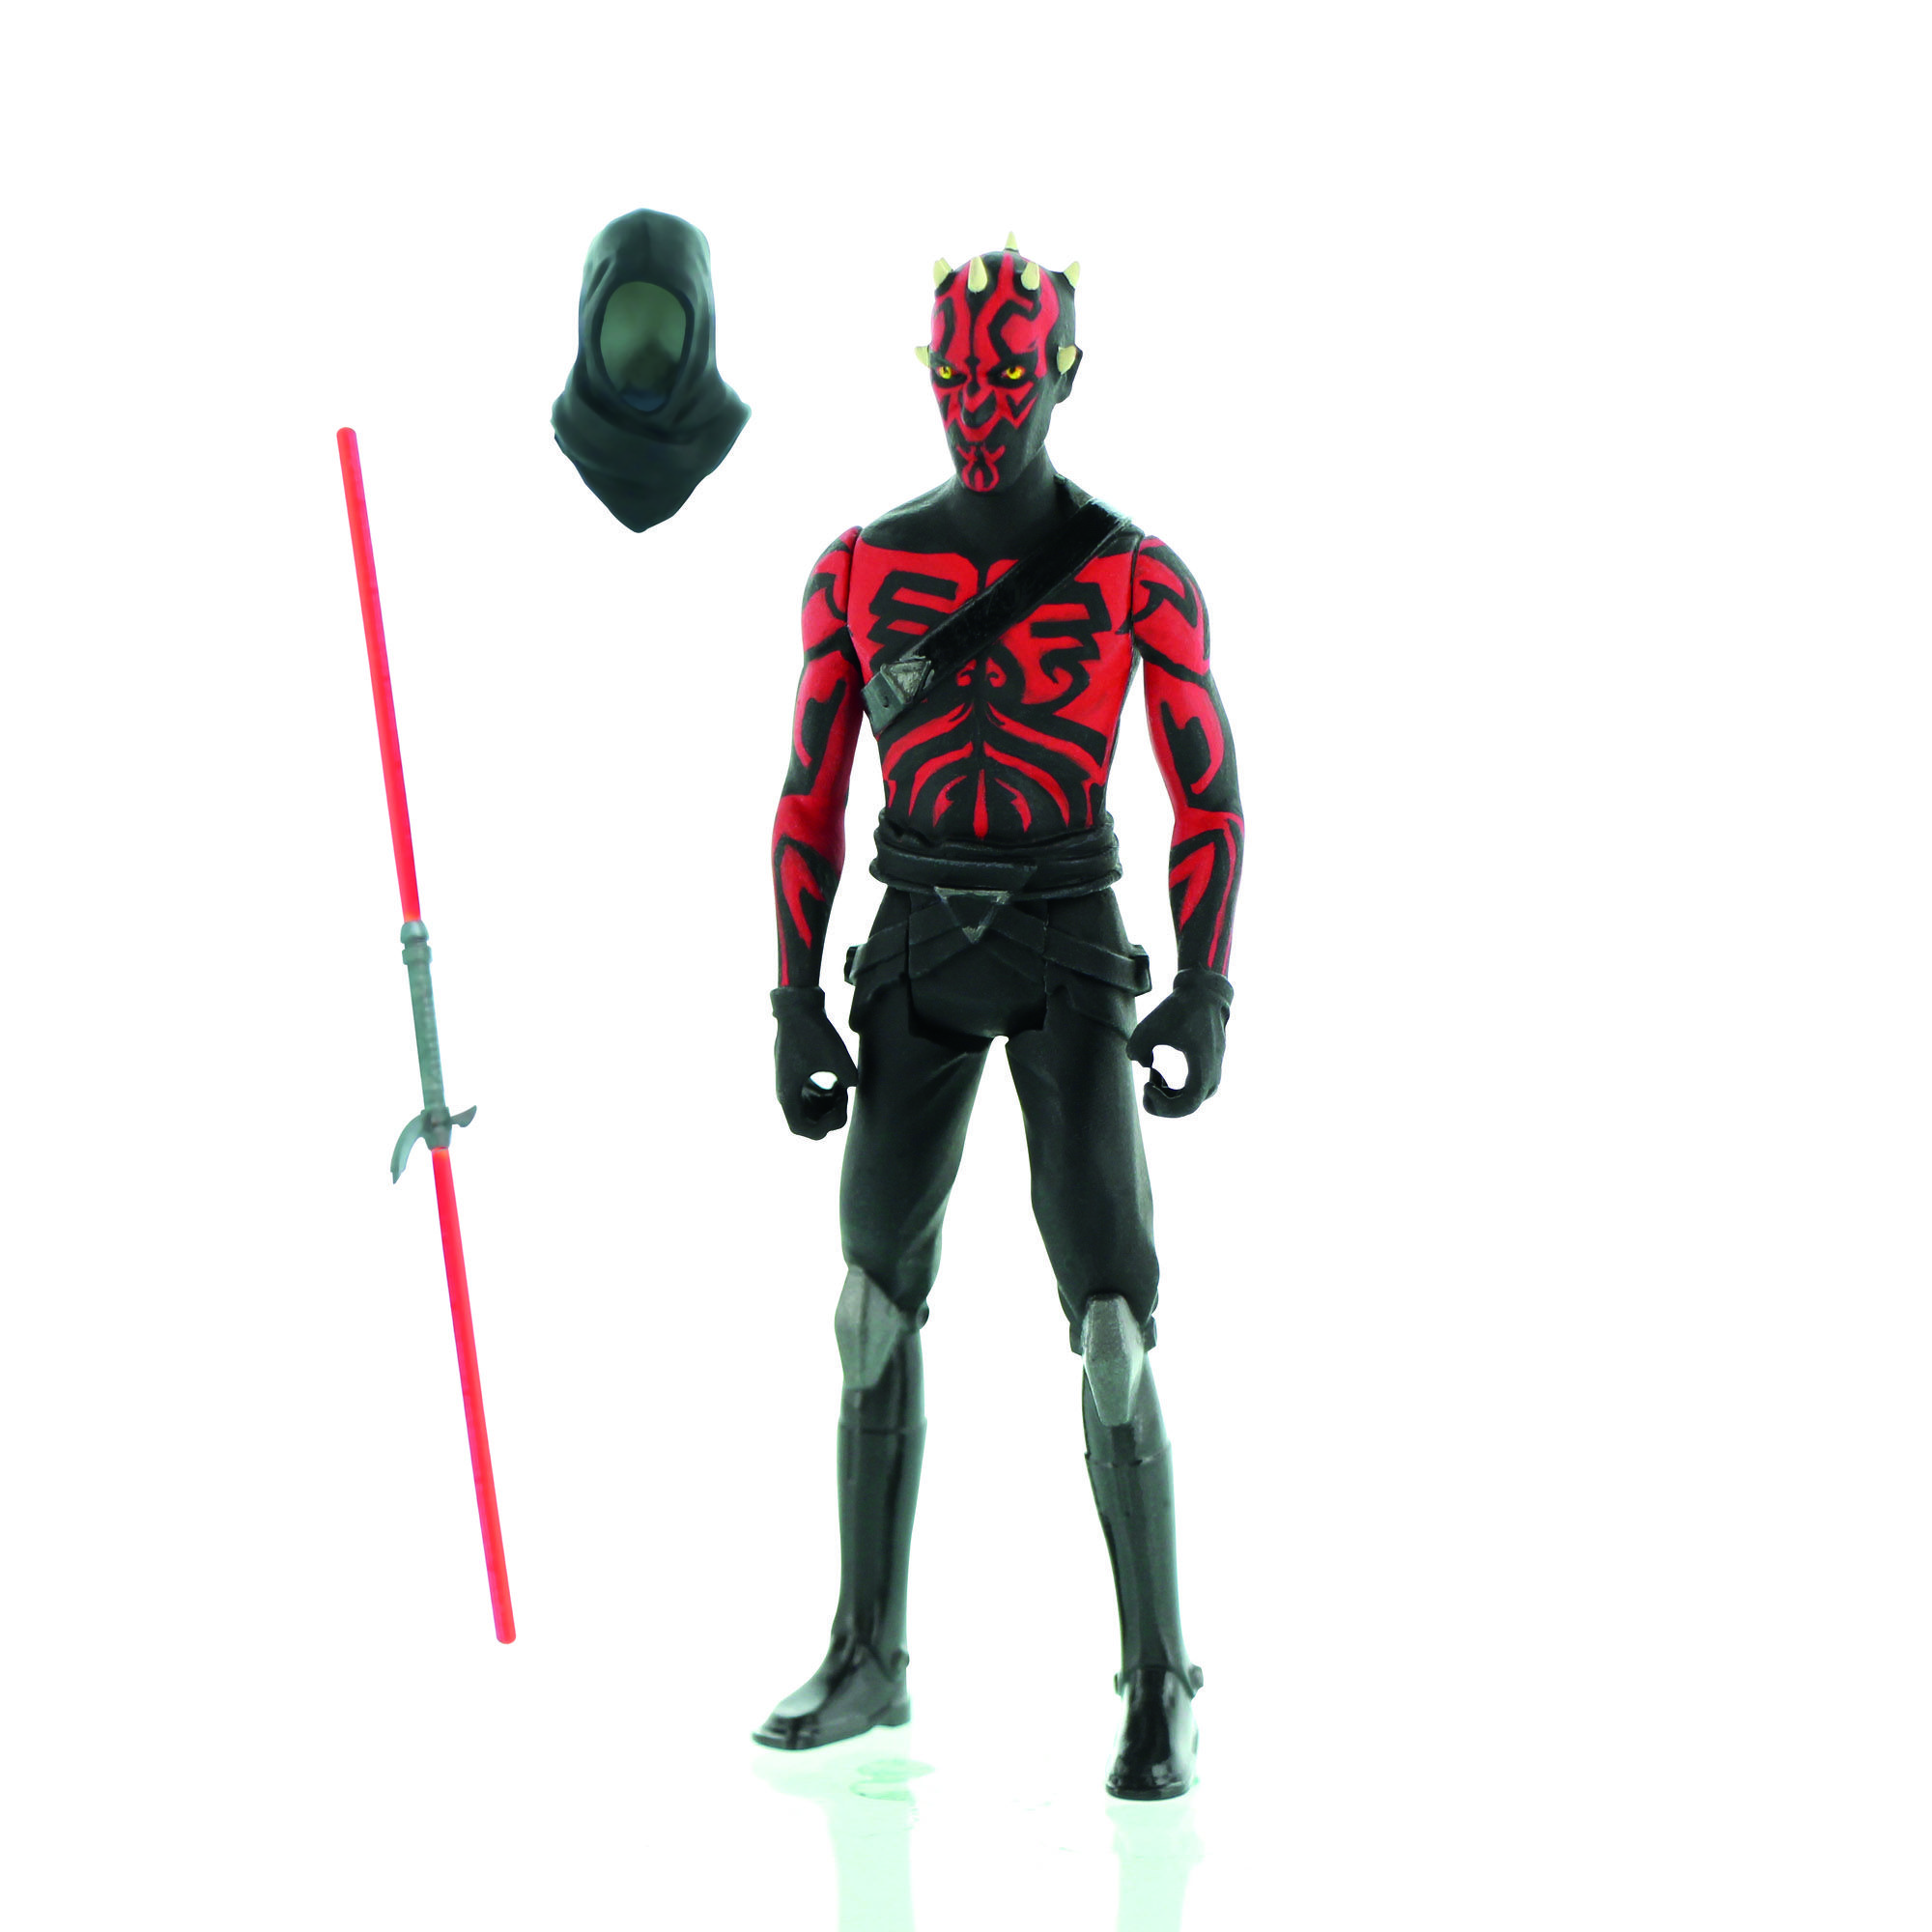 Star Wars Toys : New star wars rebels black series and lightsaber toys